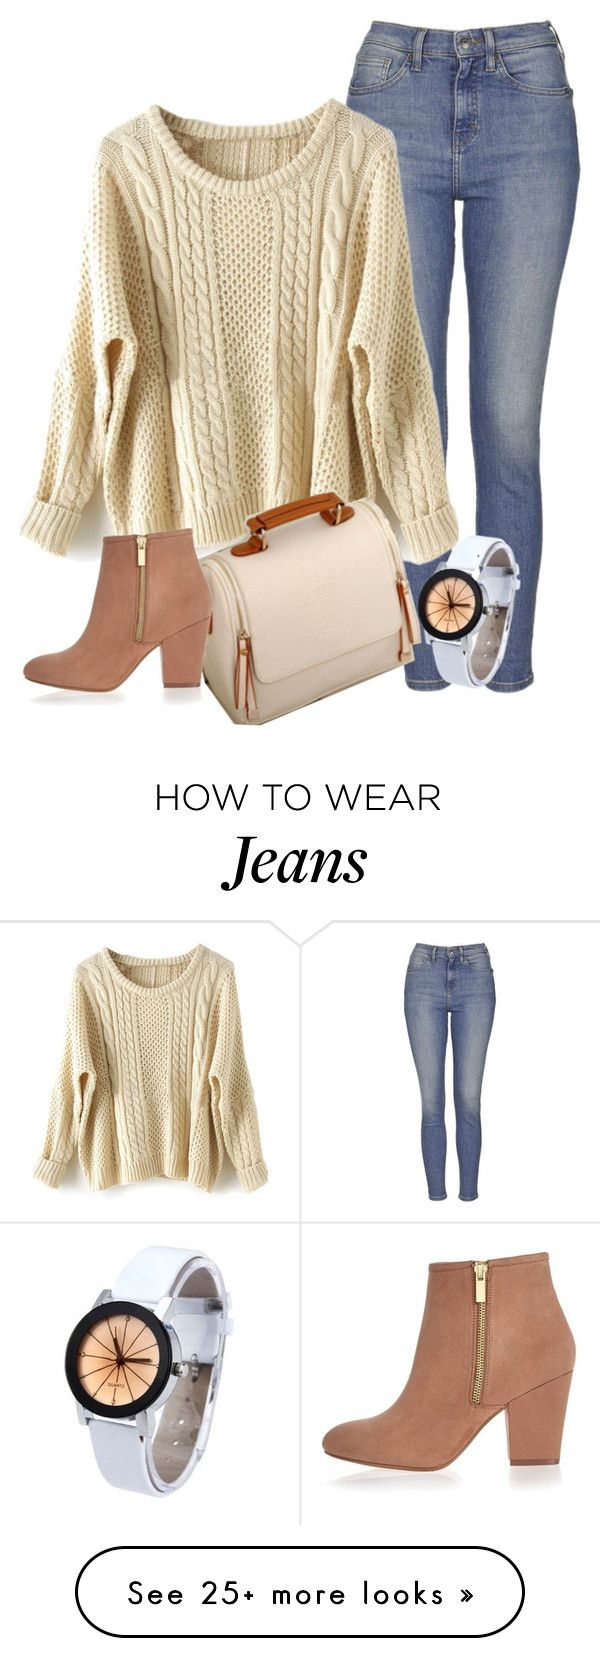 """Outfit we love"" by myfriendshop on Polyvore featuring Topshop and River Island"